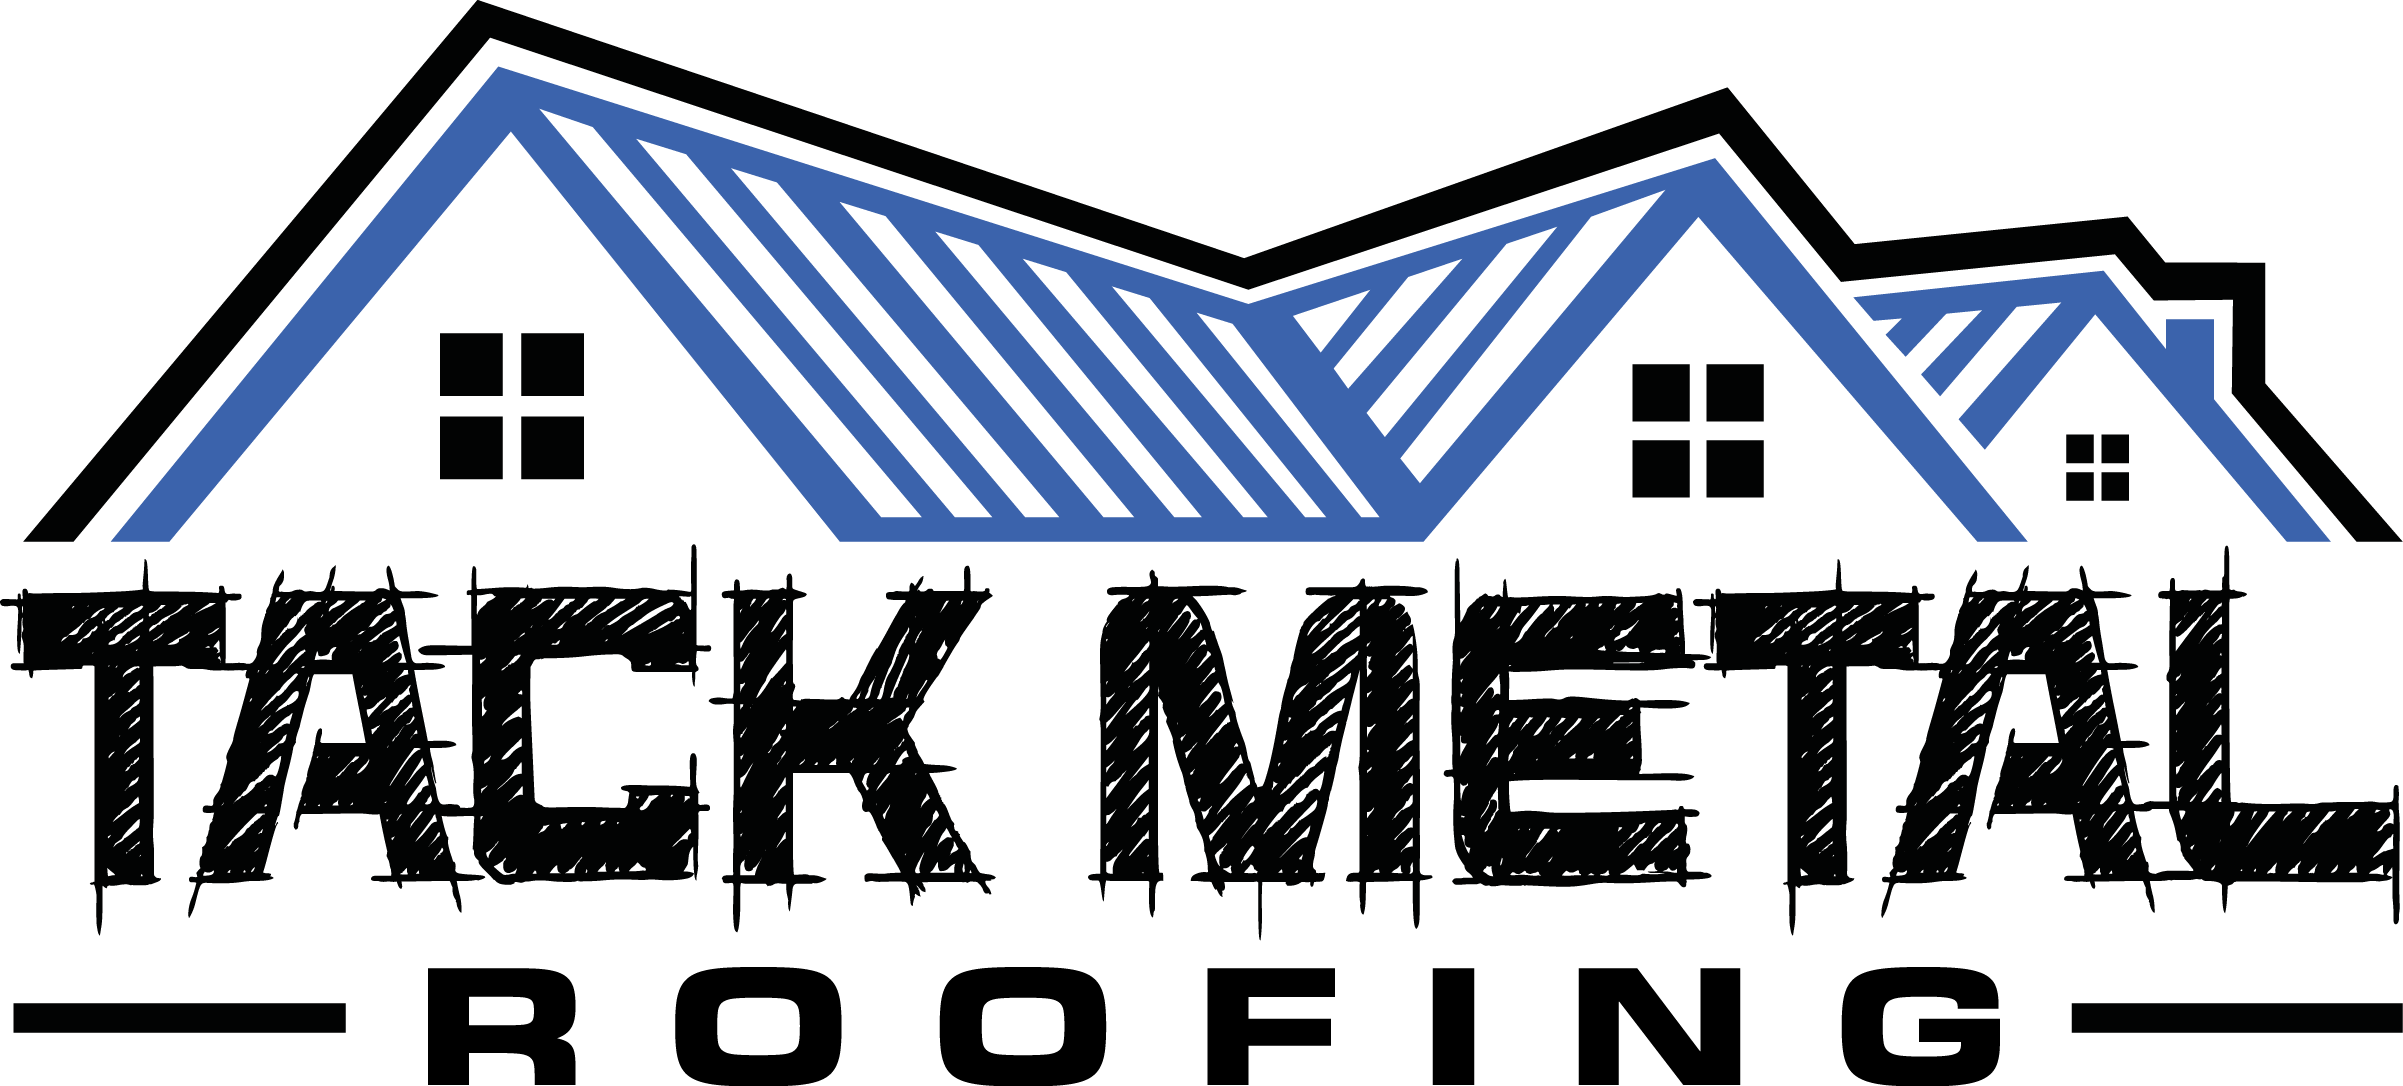 Tin roof clipart freeuse download Tack Metal Roofing MFG - CCIDA freeuse download